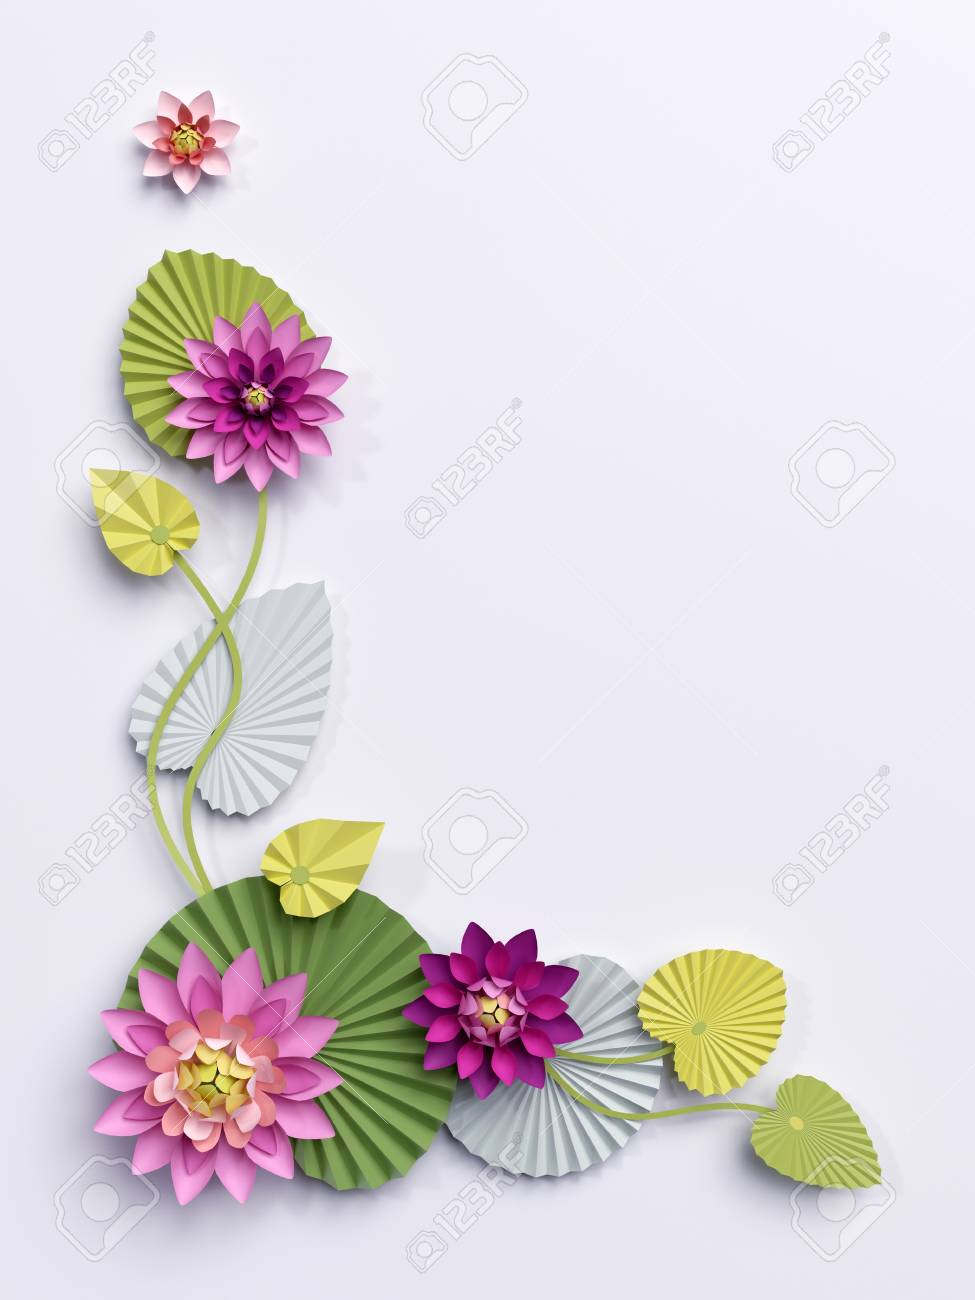 3d render paper lotus flowers corner wall decoration pink stock 3d render paper lotus flowers corner wall decoration pink water lily green leaves mightylinksfo Gallery